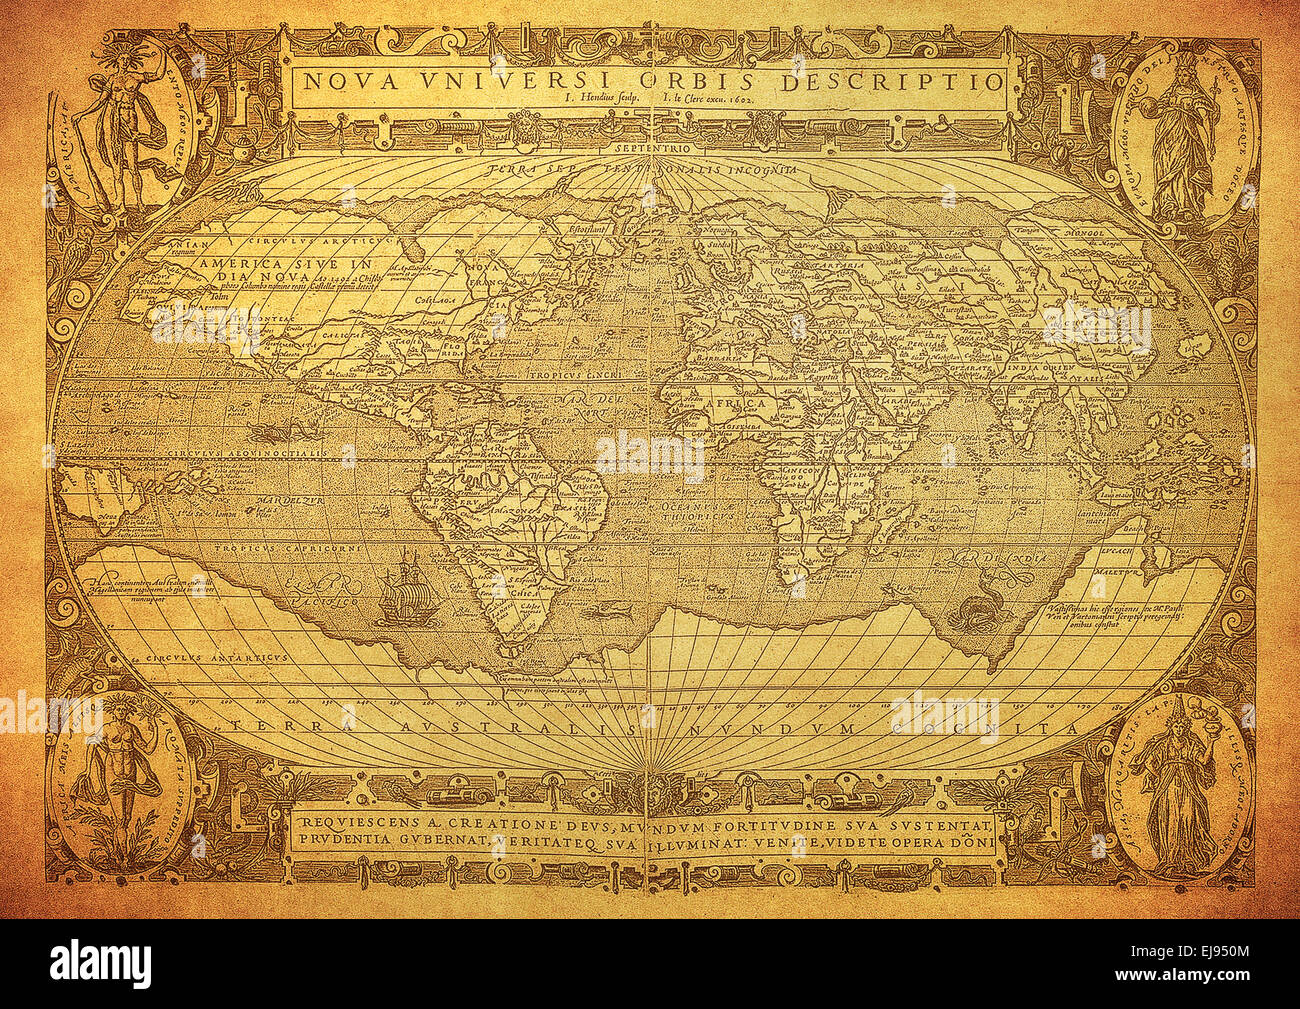 vintage map of the world 1602 - Stock Image